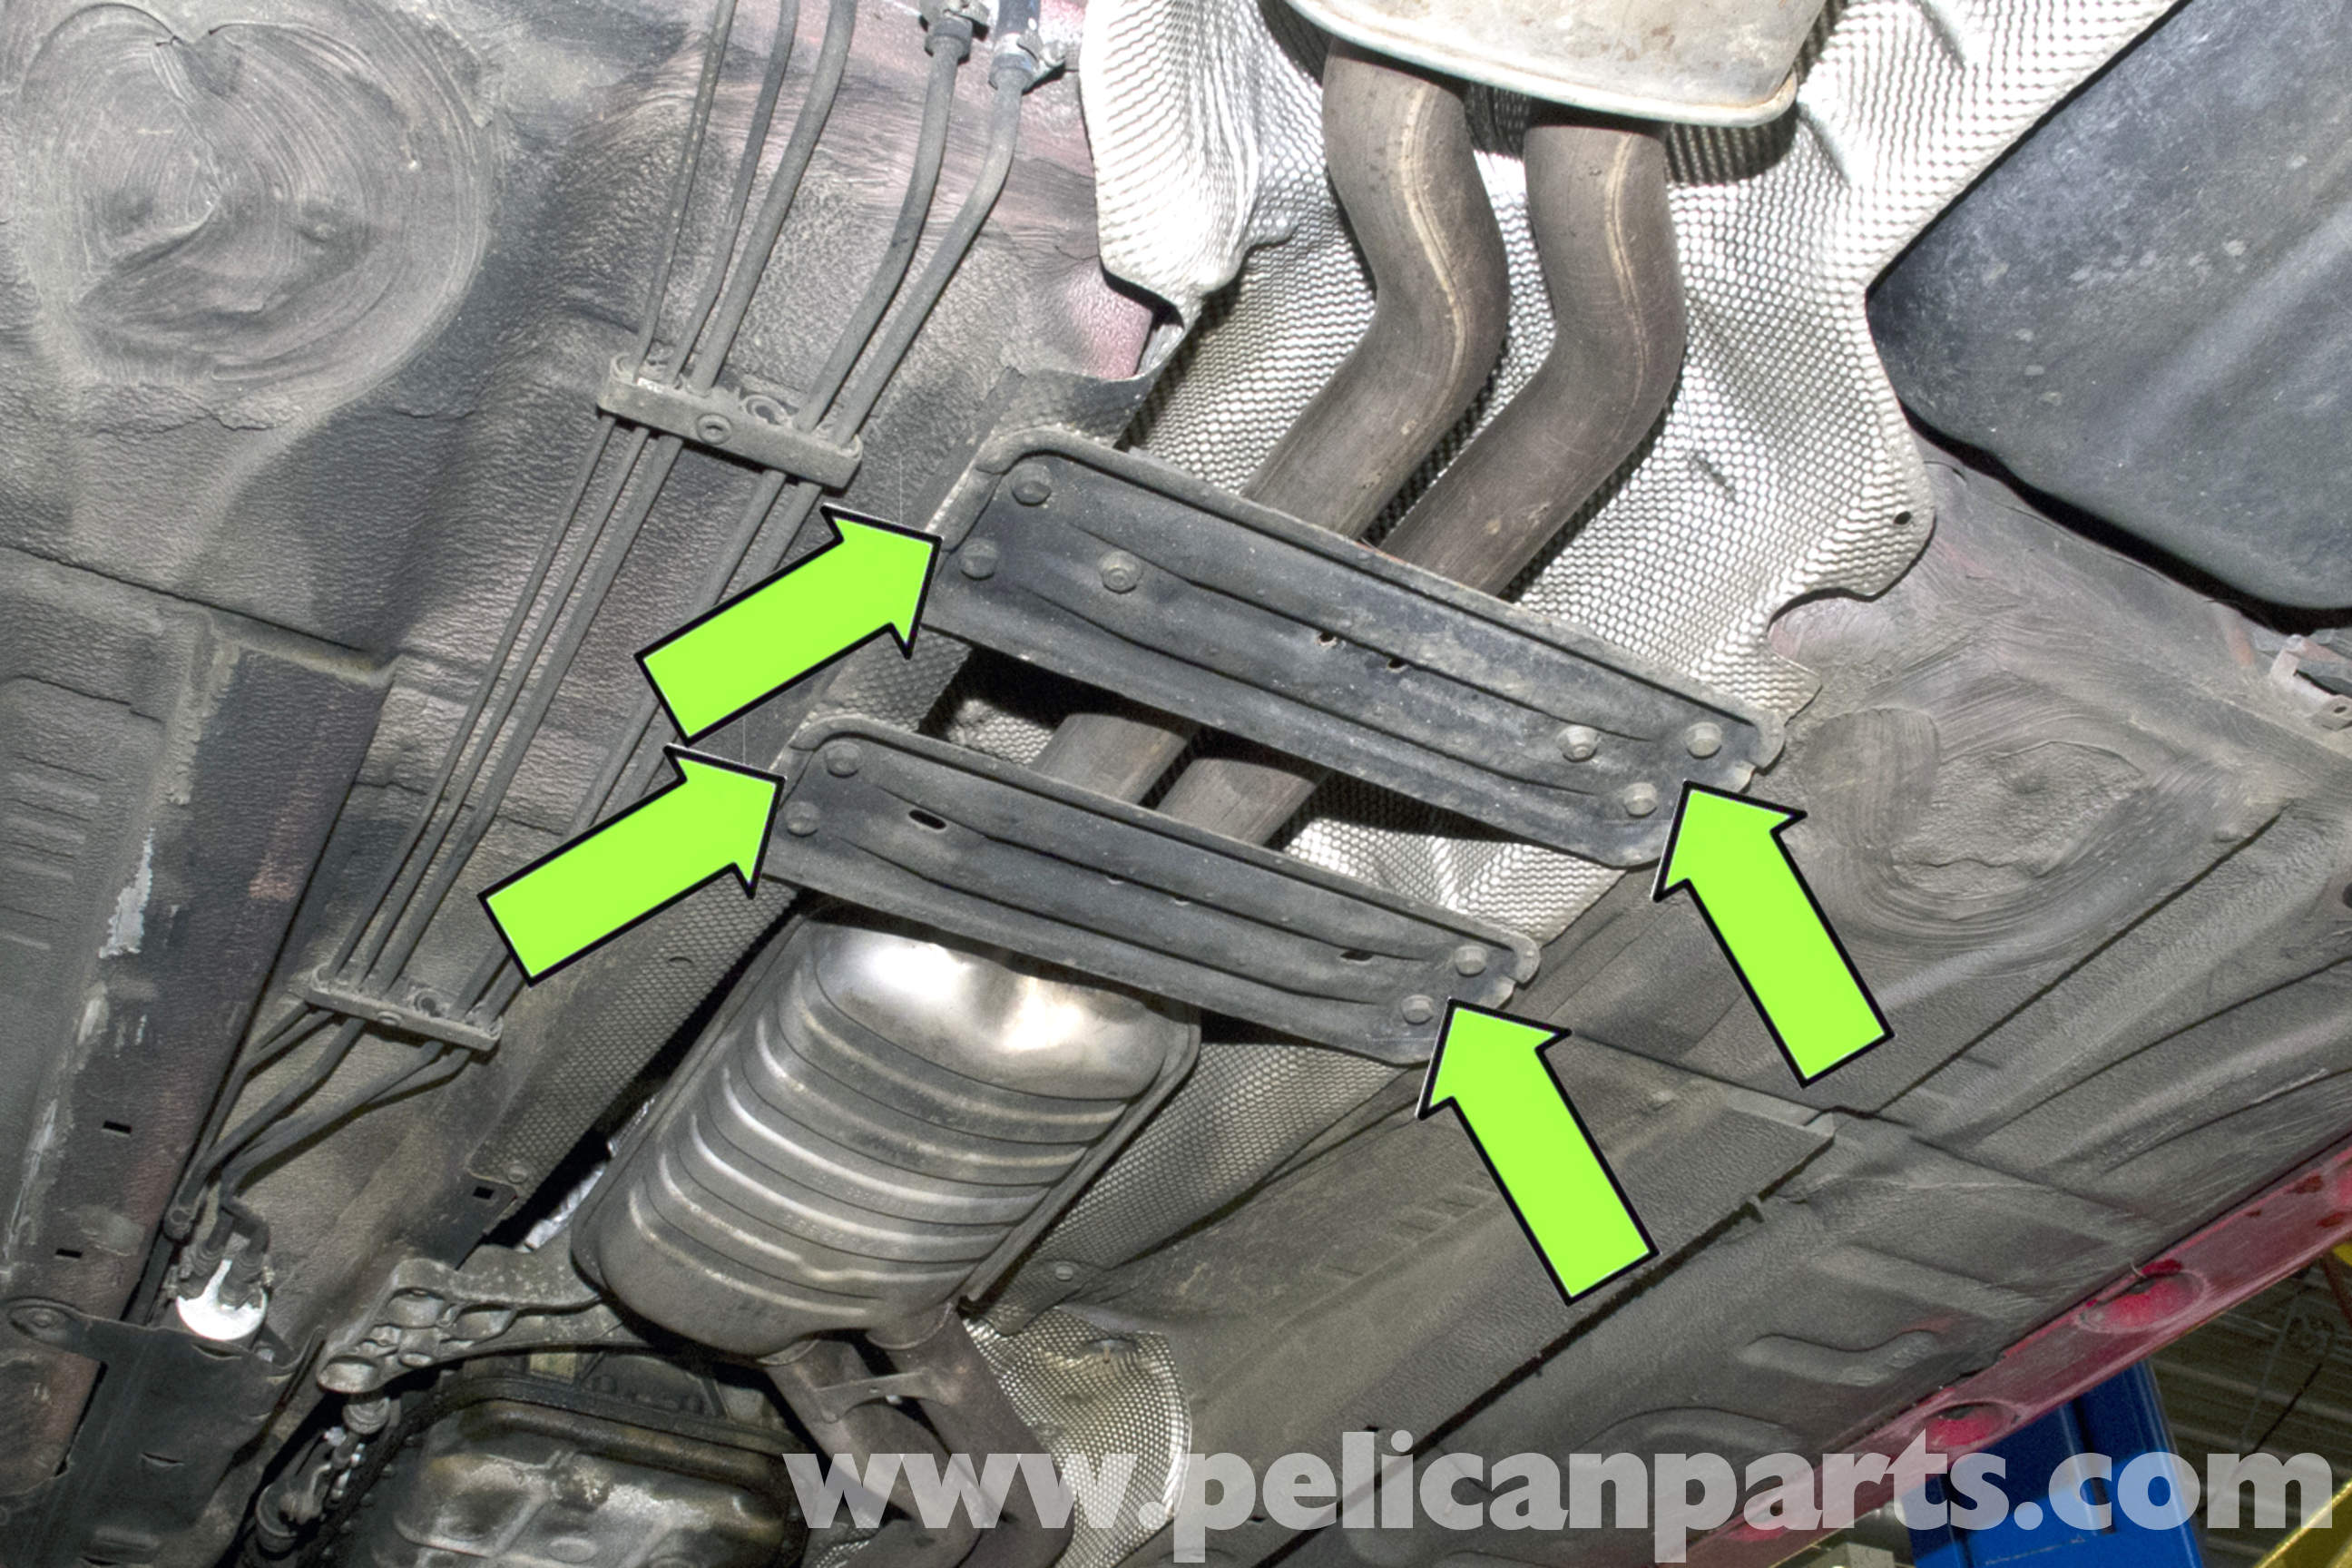 bmw e46 exhaust system removal bmw 325i 2001 2005 bmw 325xi 2001 2005 bmw 325ci 2001 2006 bmw 325ti 2001 2004 pelican parts technical article